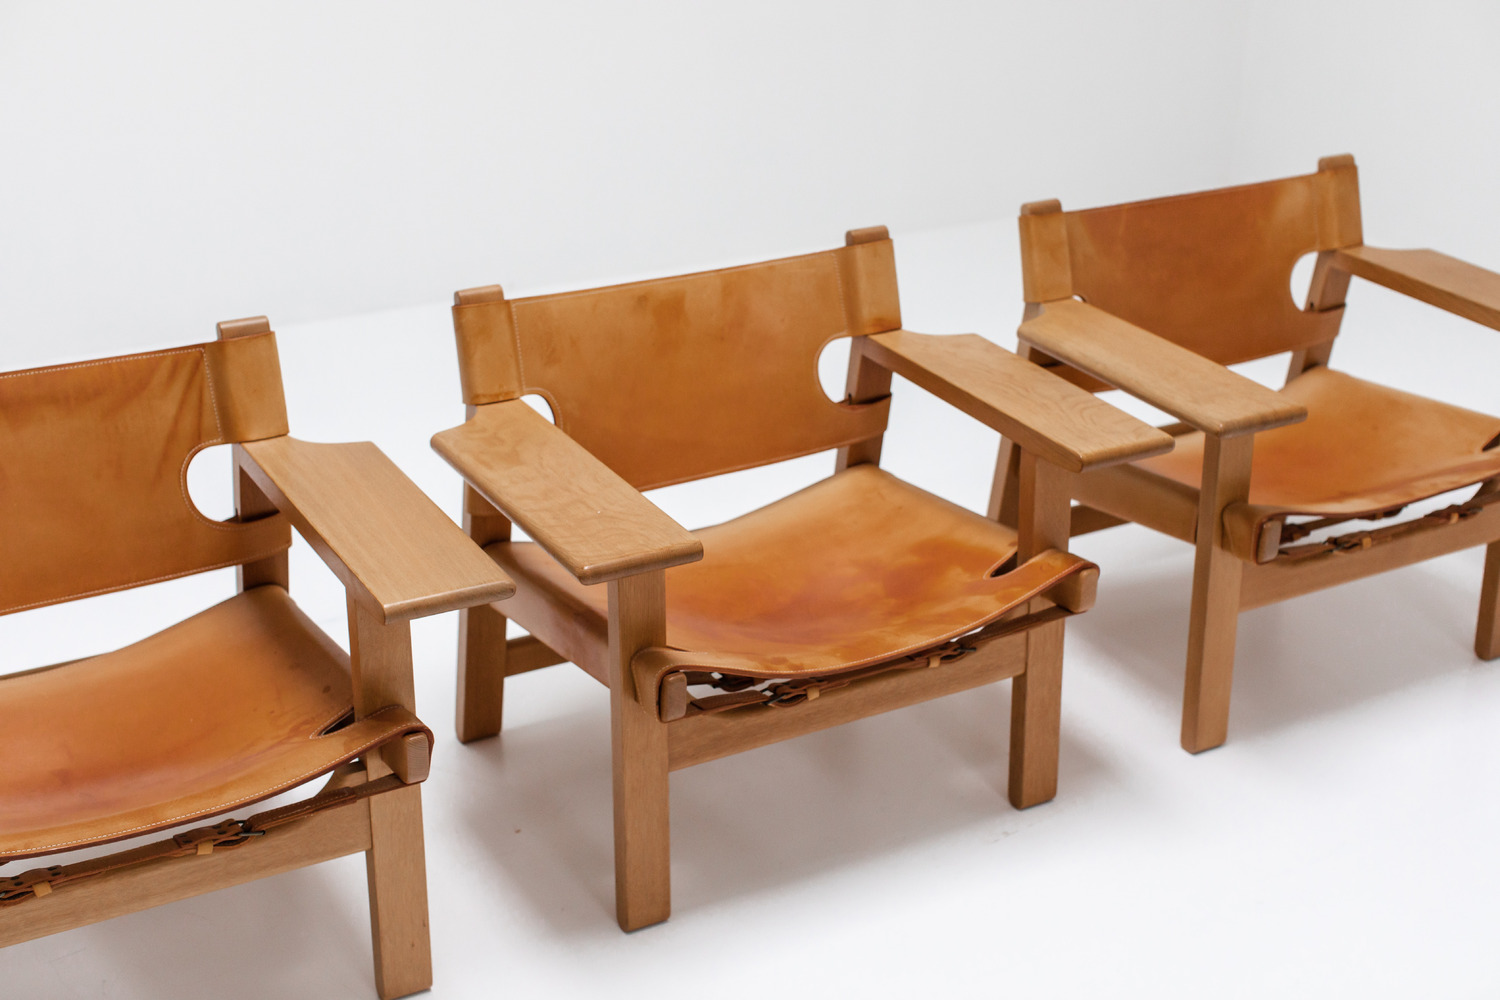 Spanish chairs by Borge Mogensen